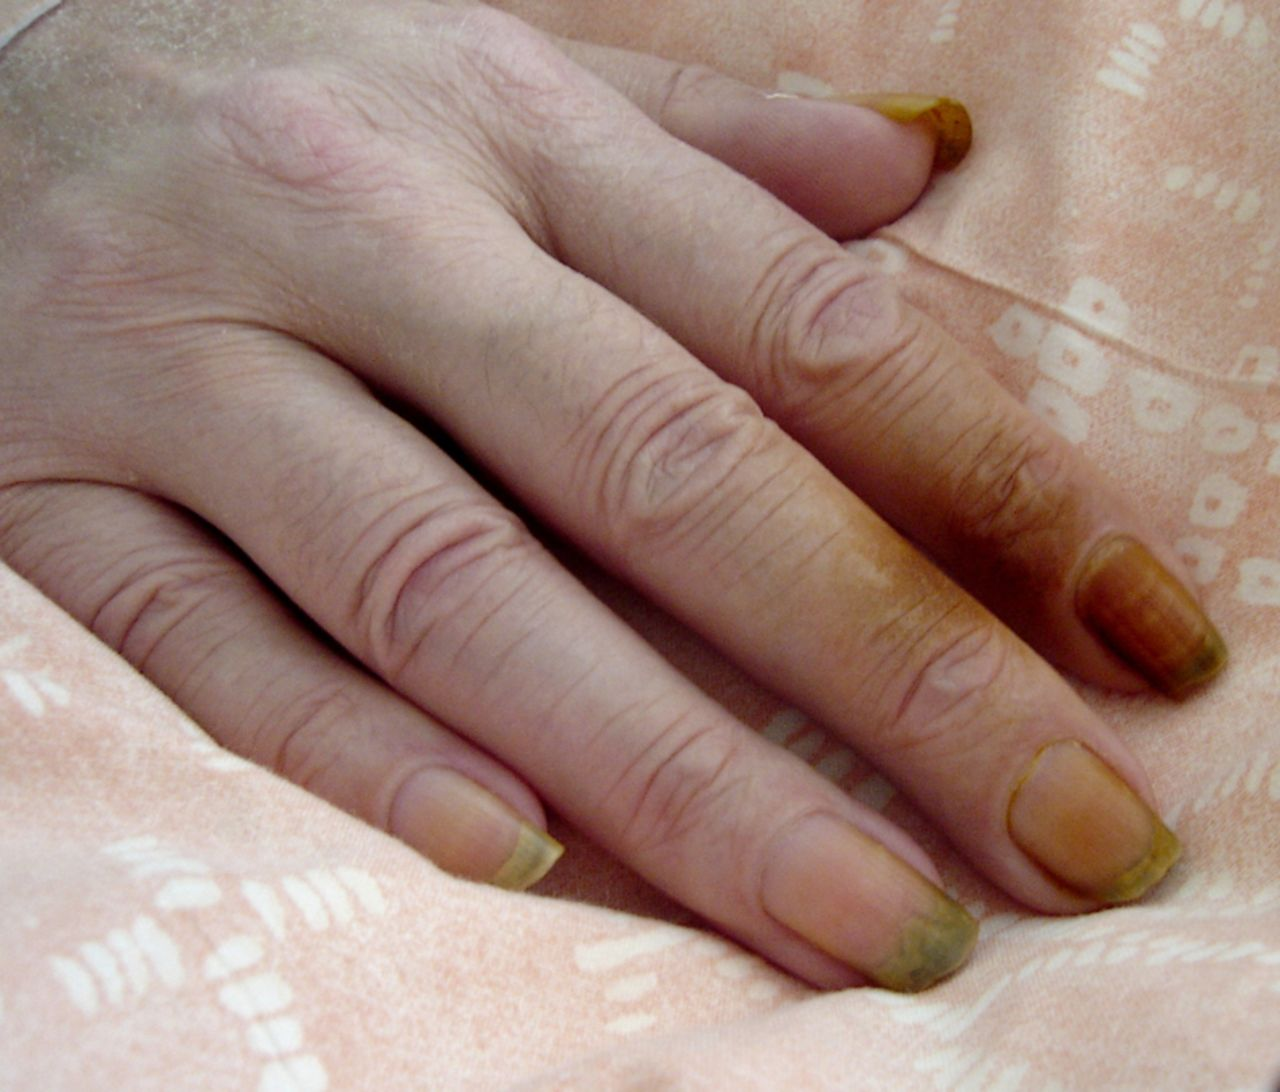 Tobacco-stained fingers: a clue for smoking-related disease or ...